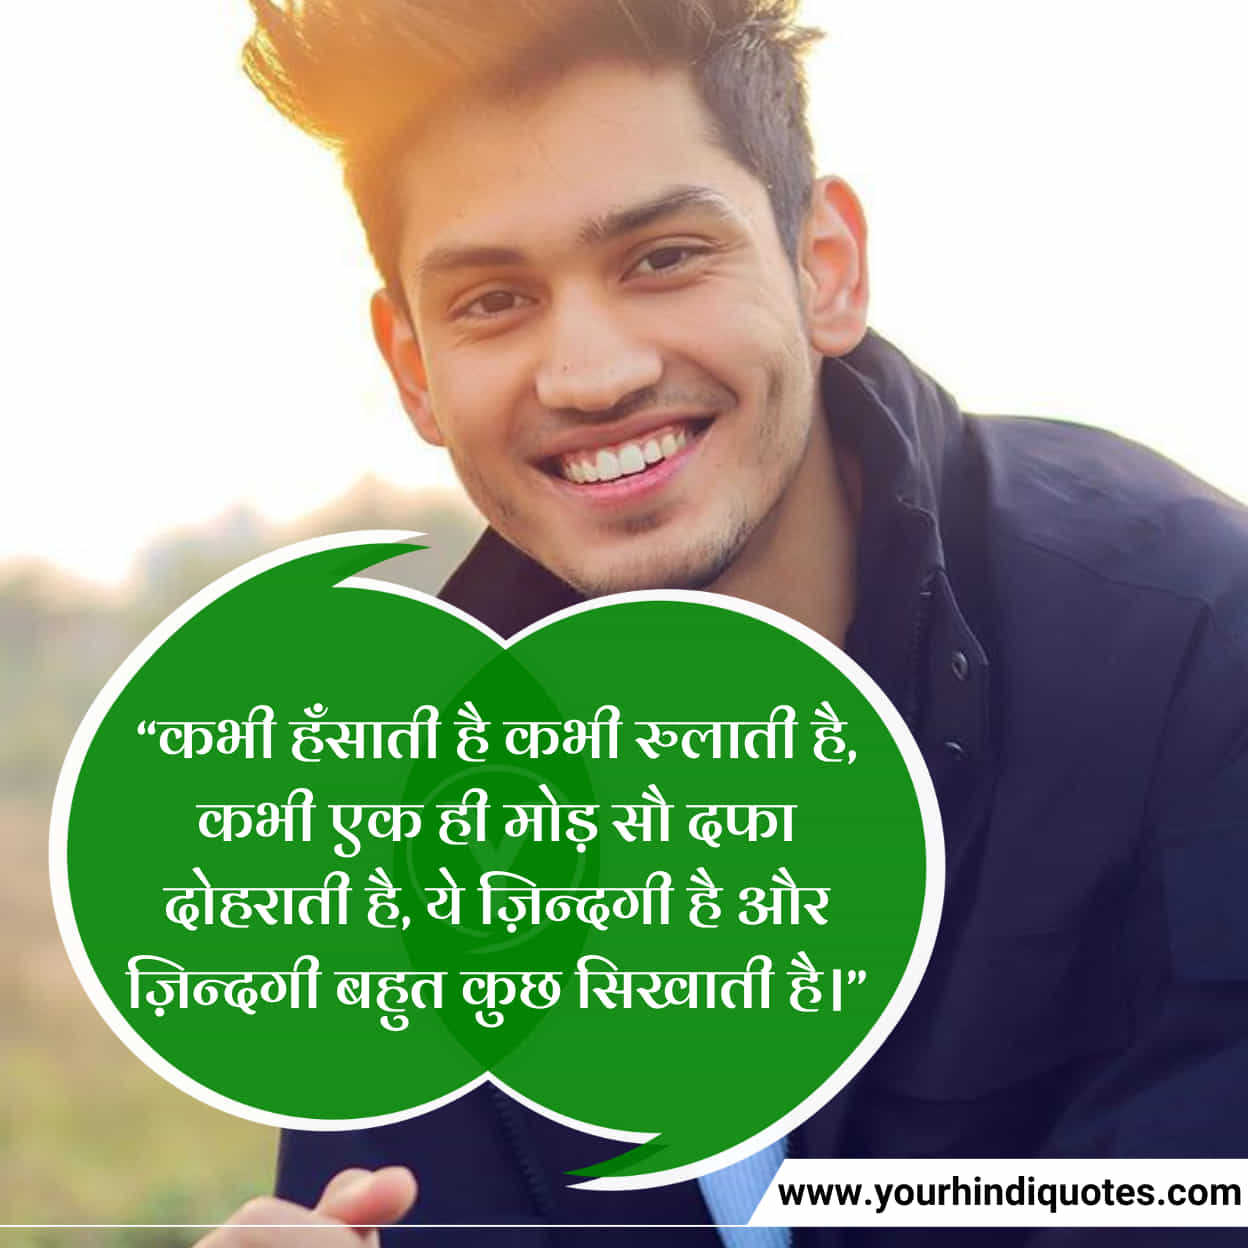 Good Morning Thoughts For Positivity In Hindi